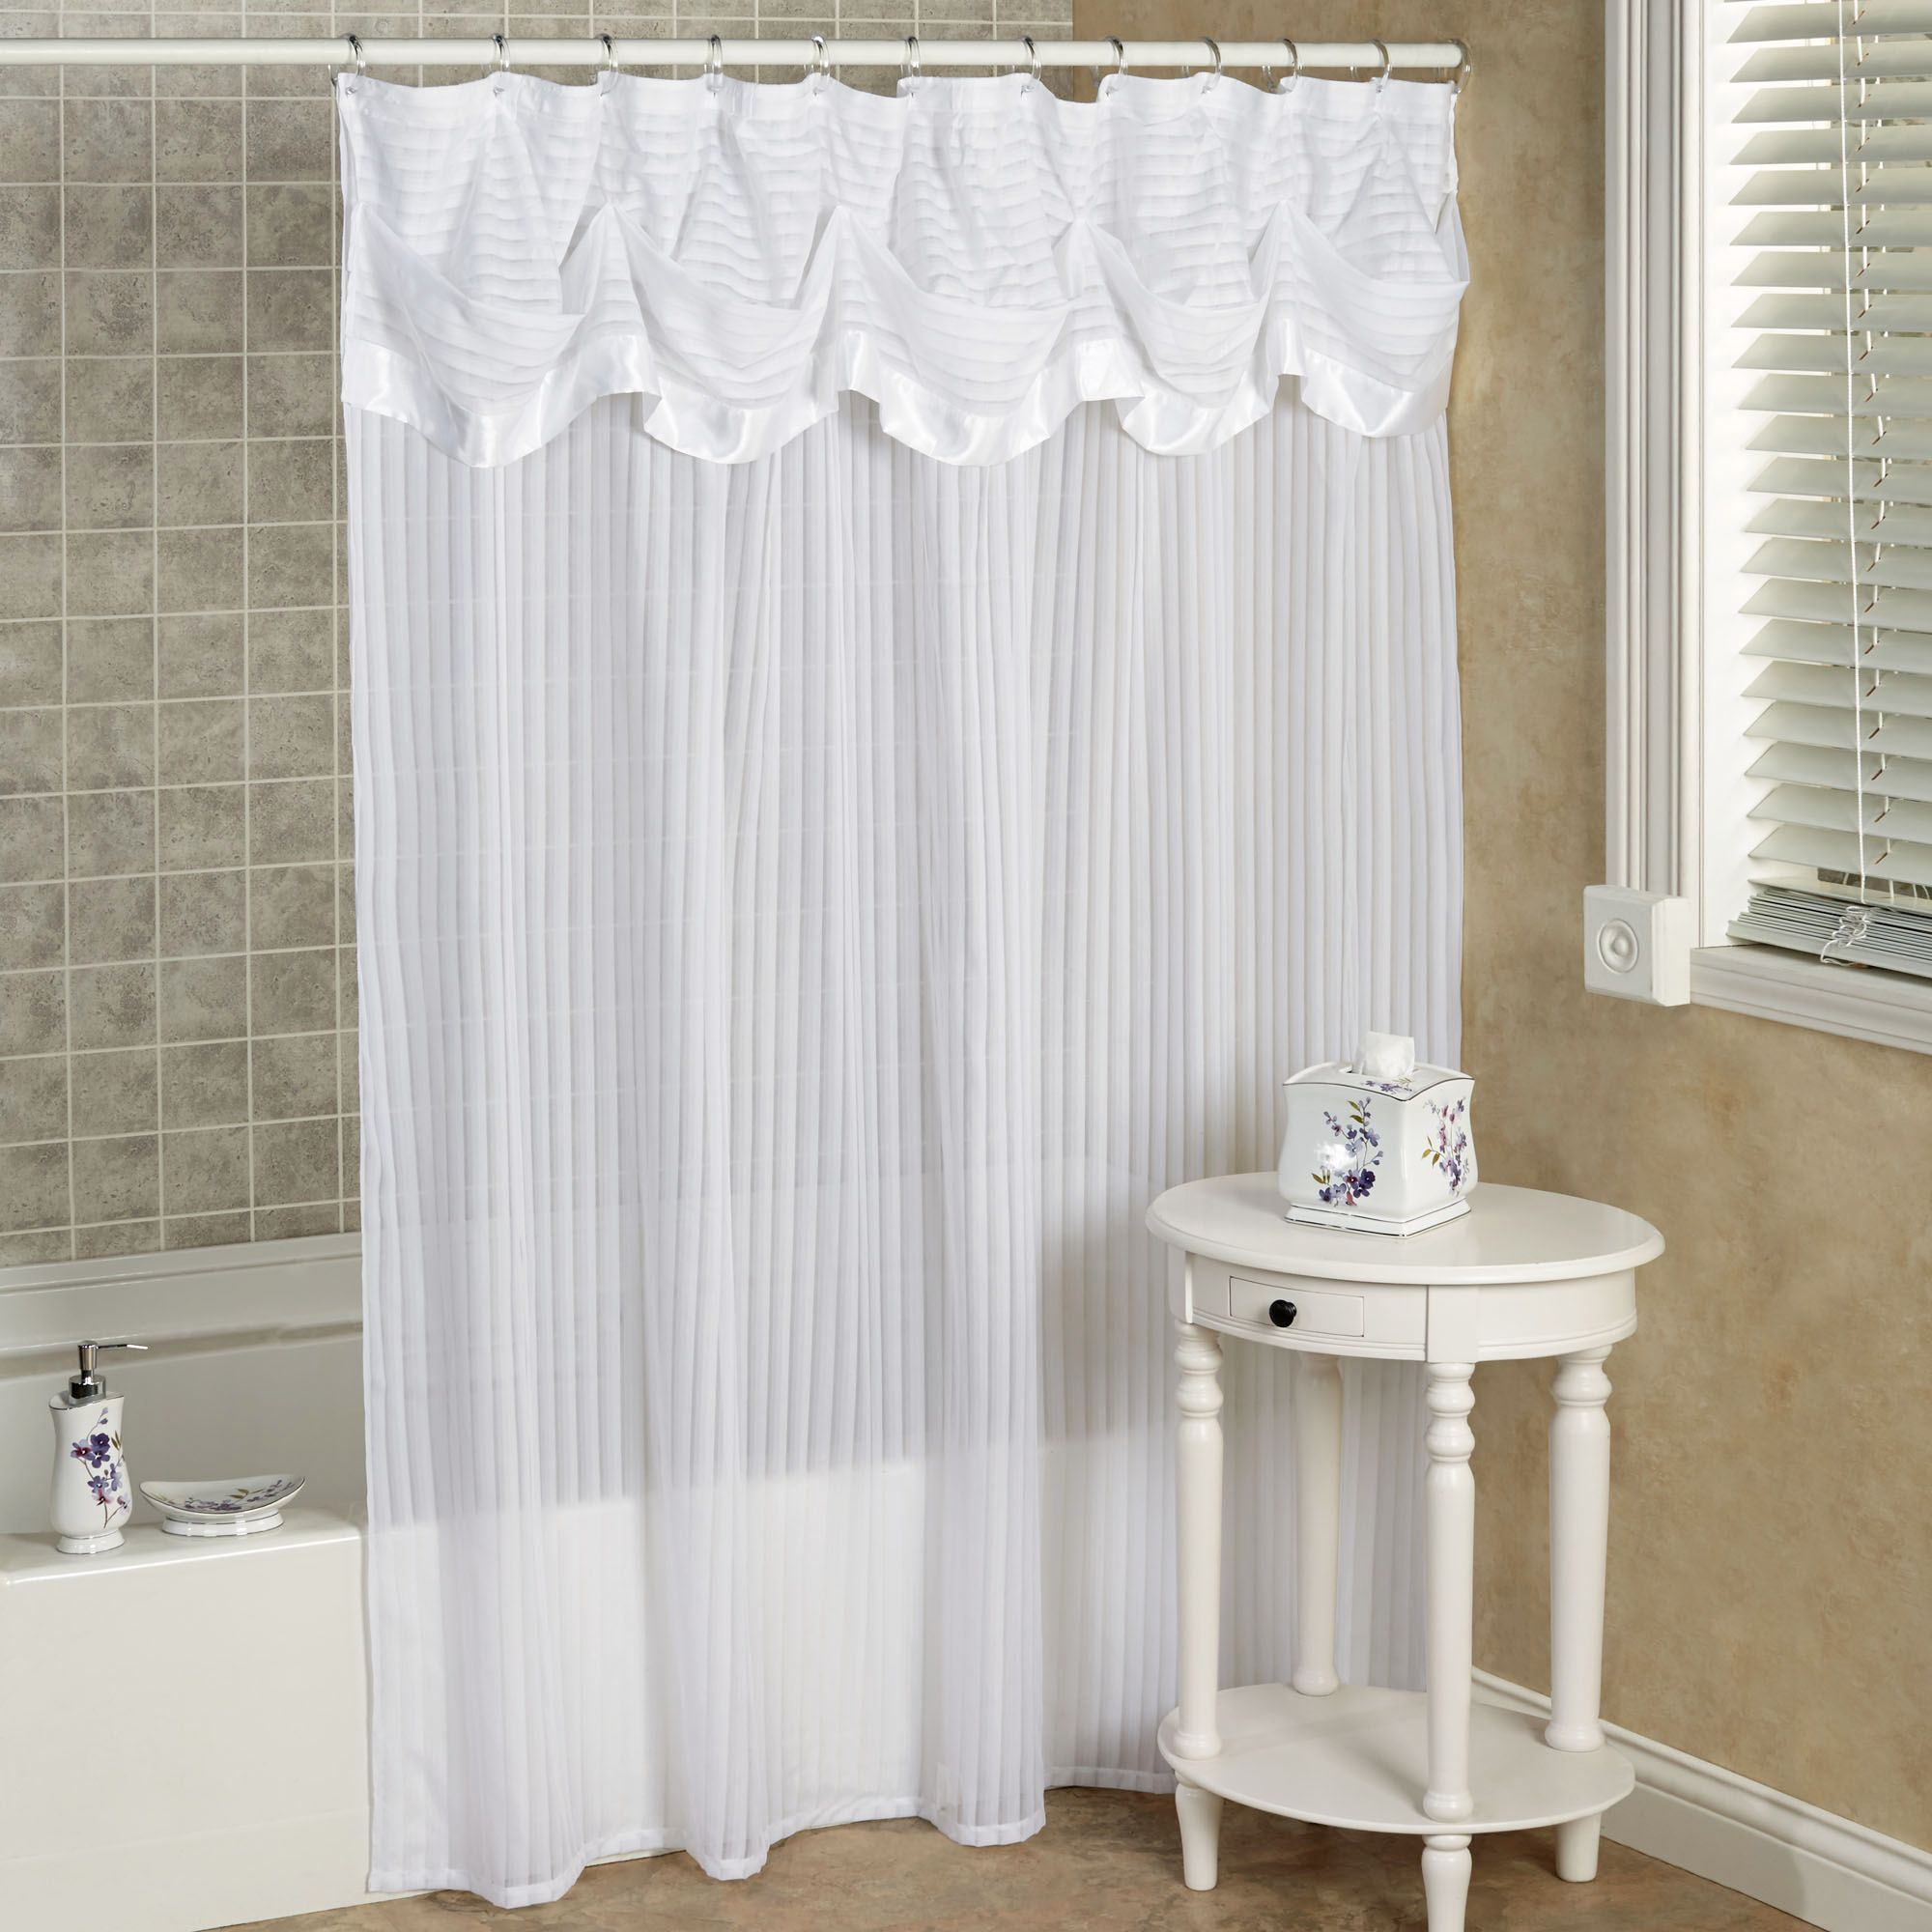 Nimbus Stripe Shower Curtain With Attached Valance